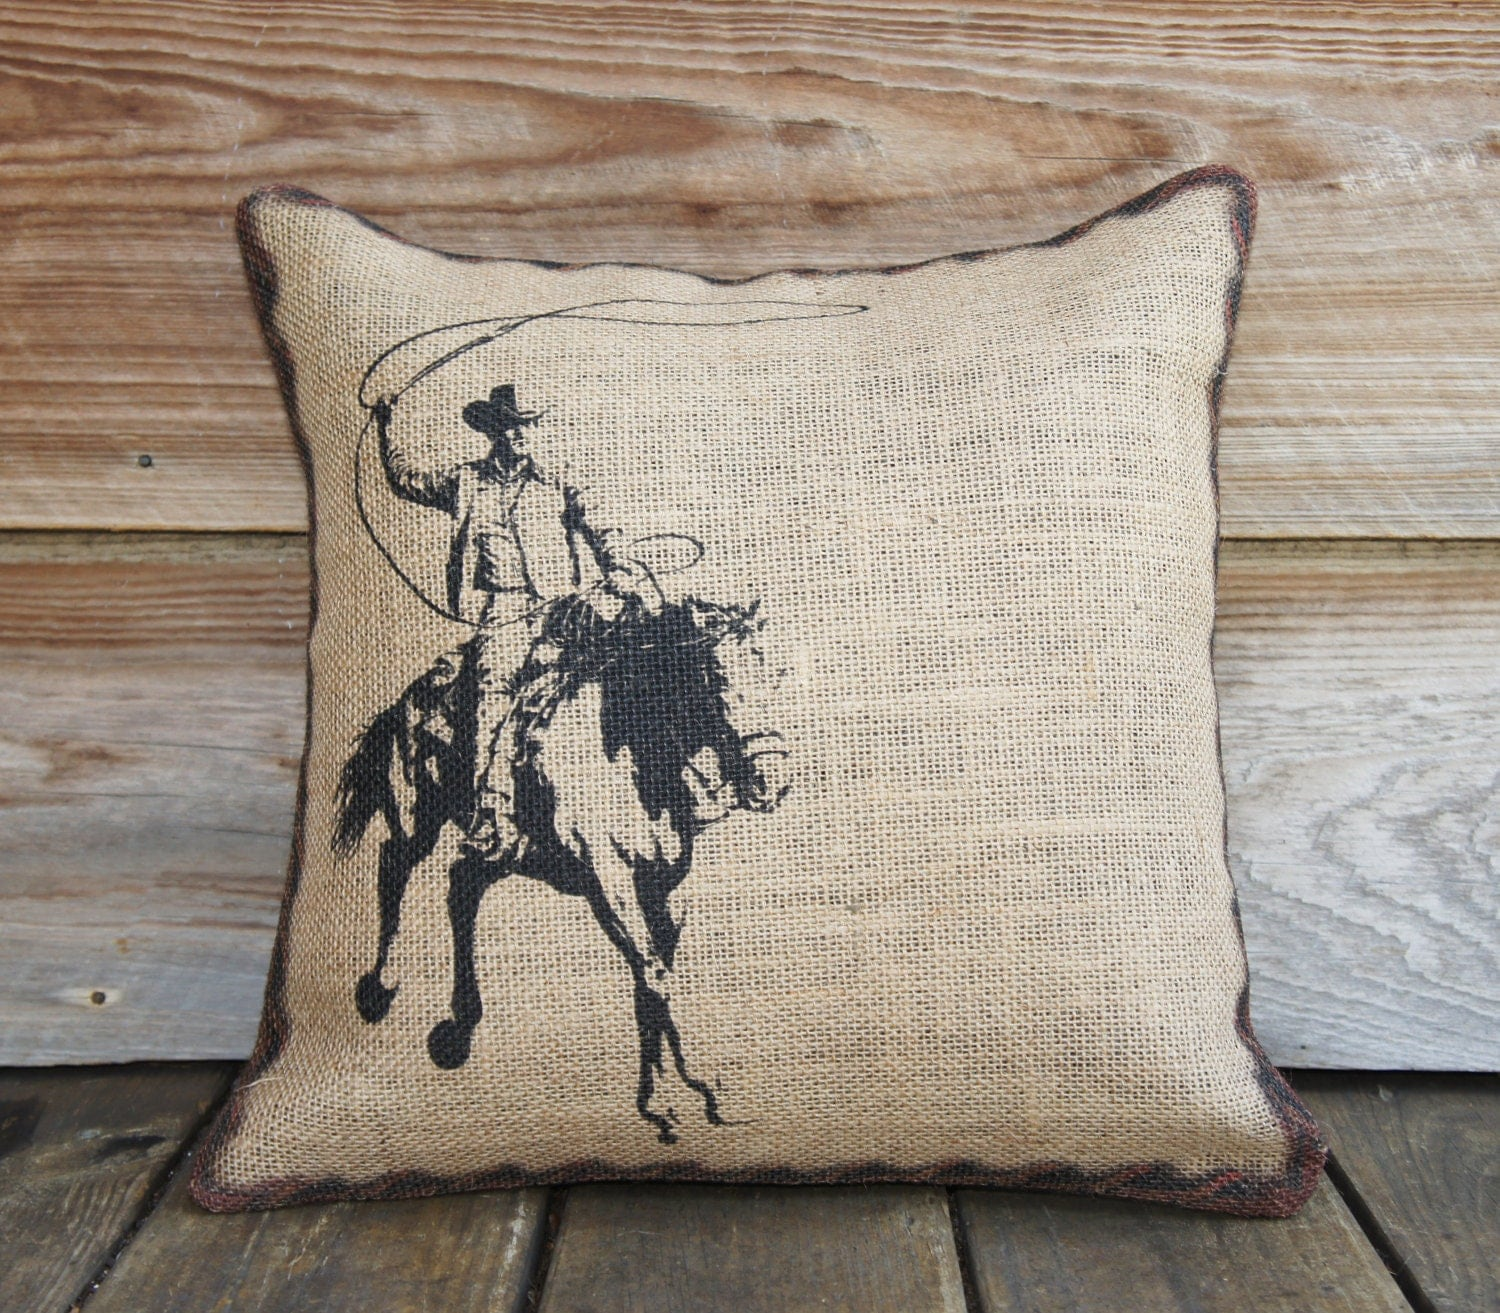 Western Throw Pillows For Couch : Burlap Pillow of Cowboy, Cushion, Throw Pillow, Western